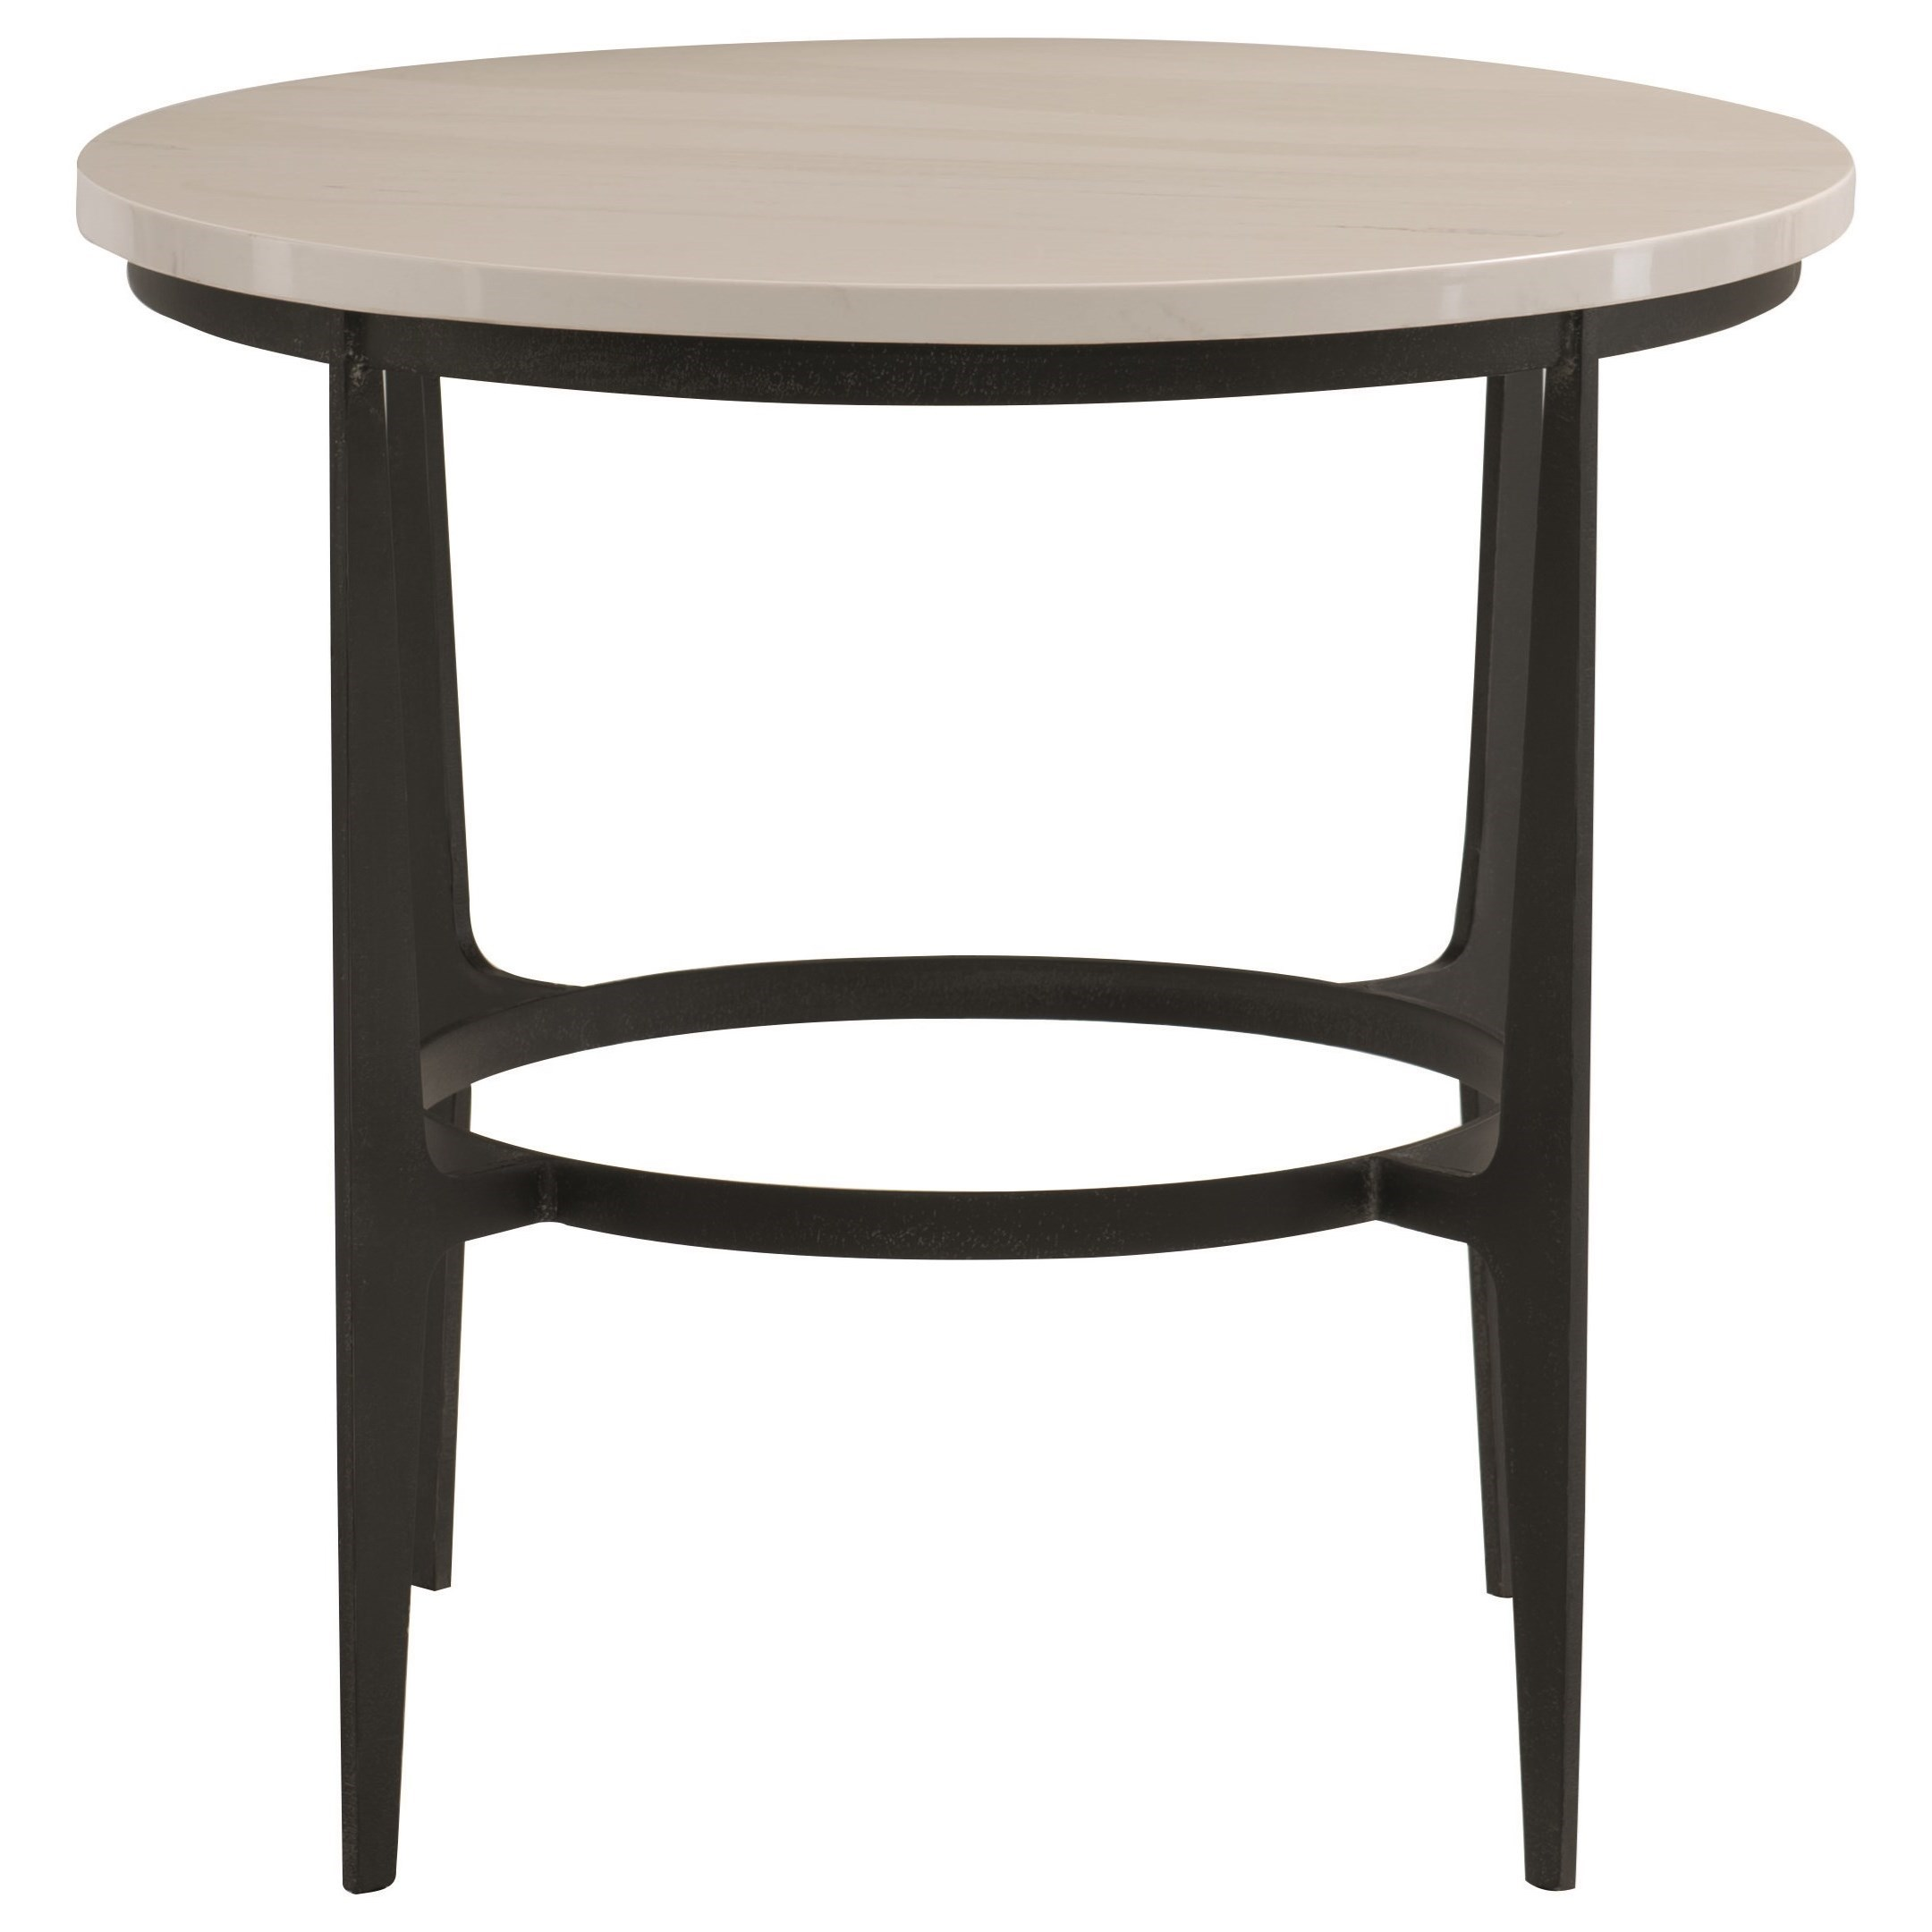 Avondale Round Metal End Table by Bernhardt at Morris Home